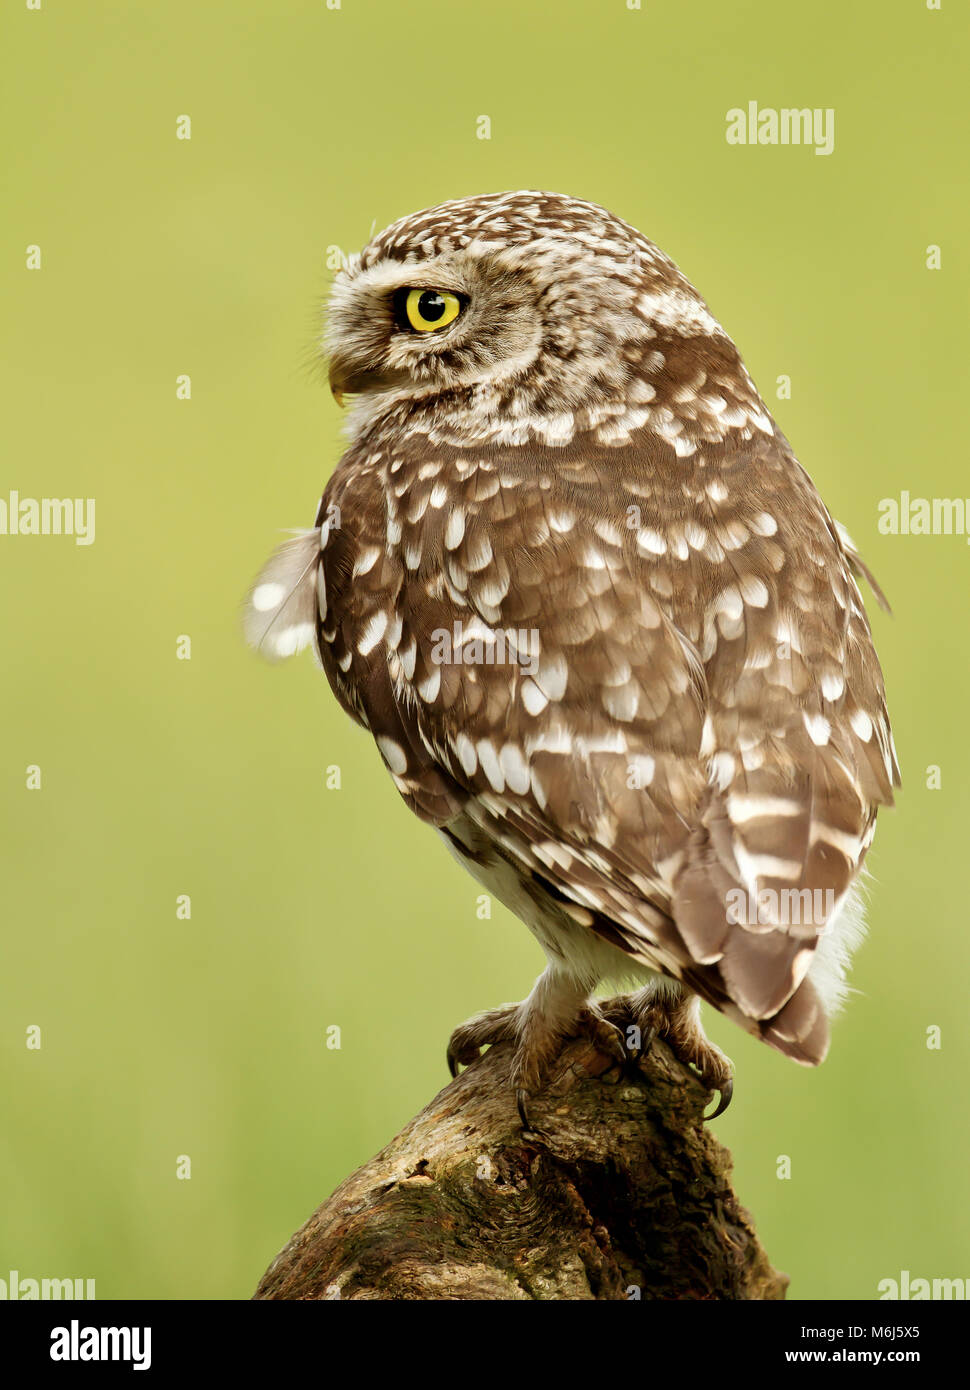 Close up of a Little owl perching on a log, UK. - Stock Image